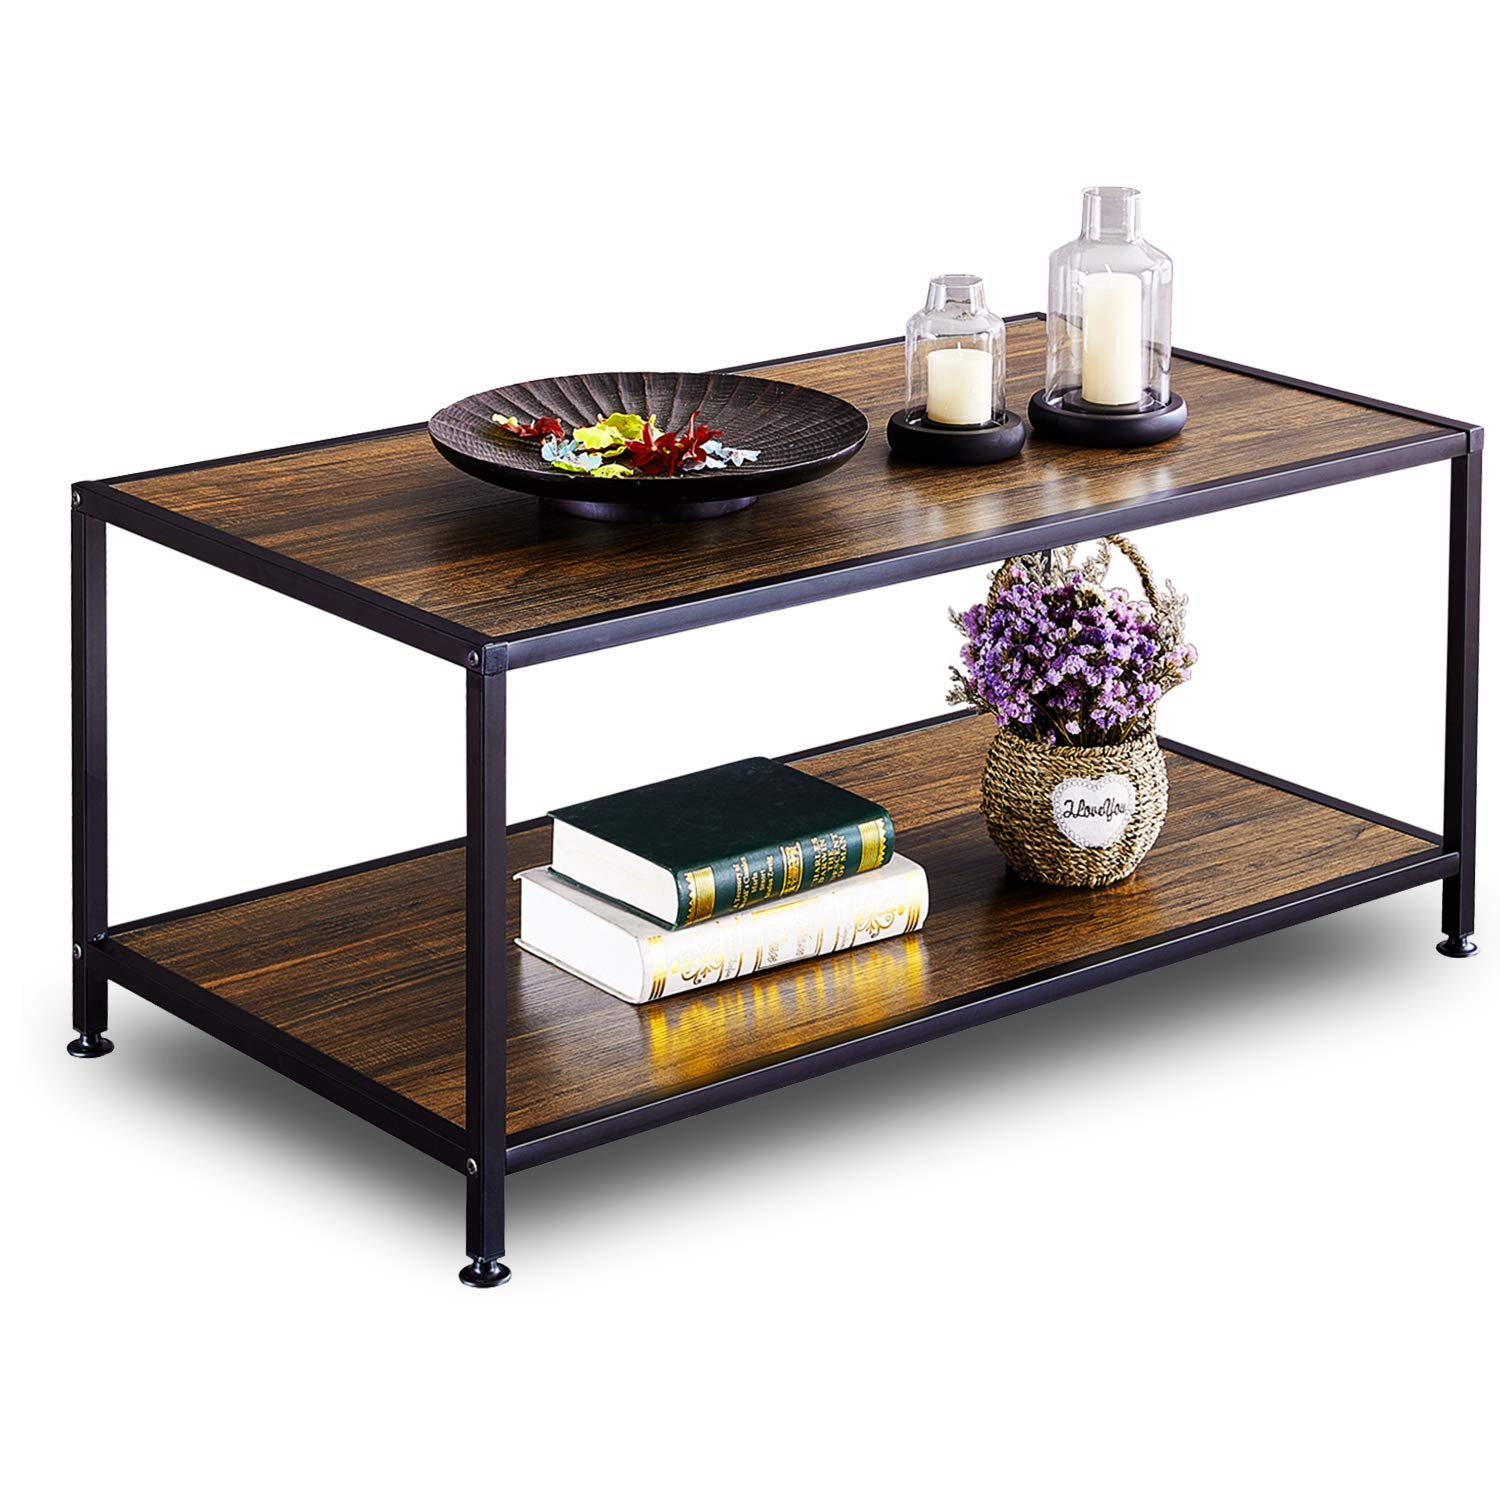 GreenForest Coffee Table Industrial for Living Room Wood Metal with Storage Walnut by GreenForest